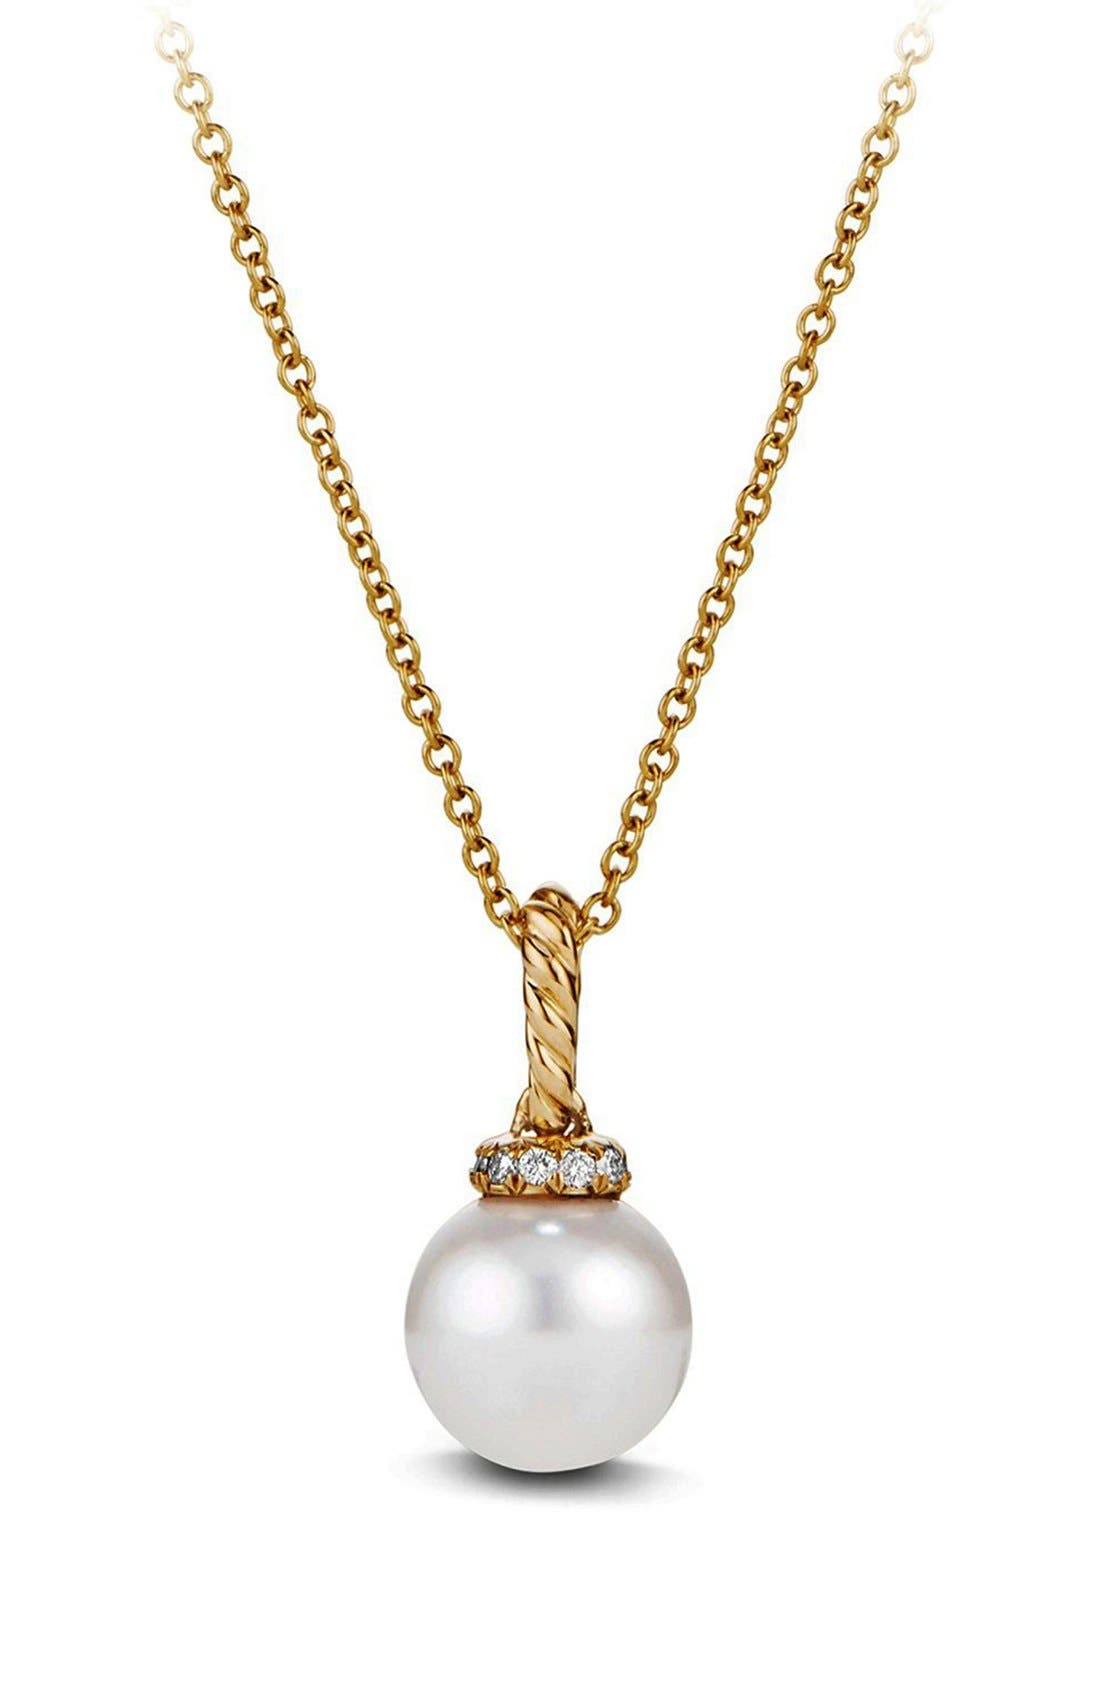 Alternate Image 1 Selected - David Yurman 'Solari' Pendant Necklace with Pearls and Diamonds in 18K Gold